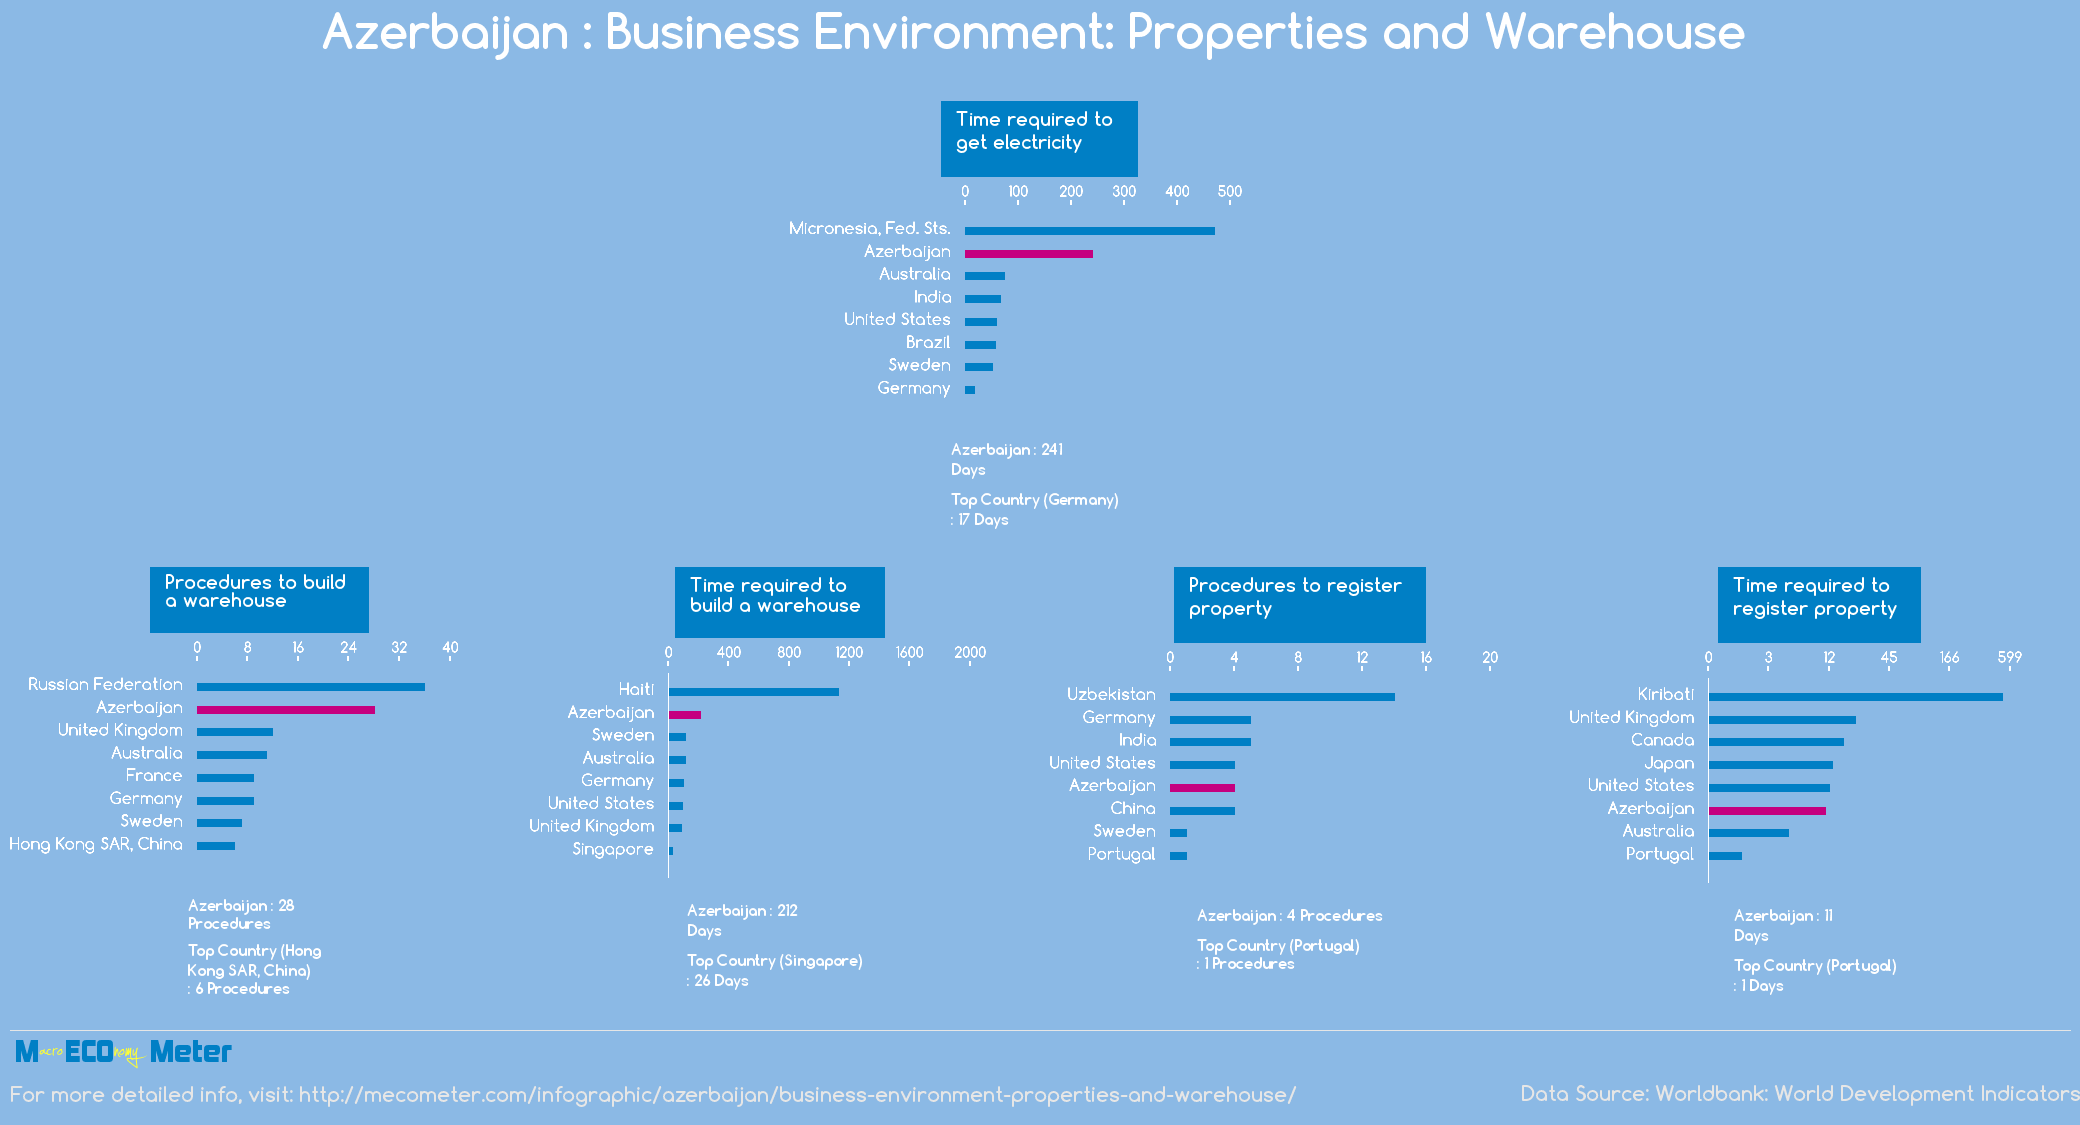 Azerbaijan : Business Environment: Properties and Warehouse